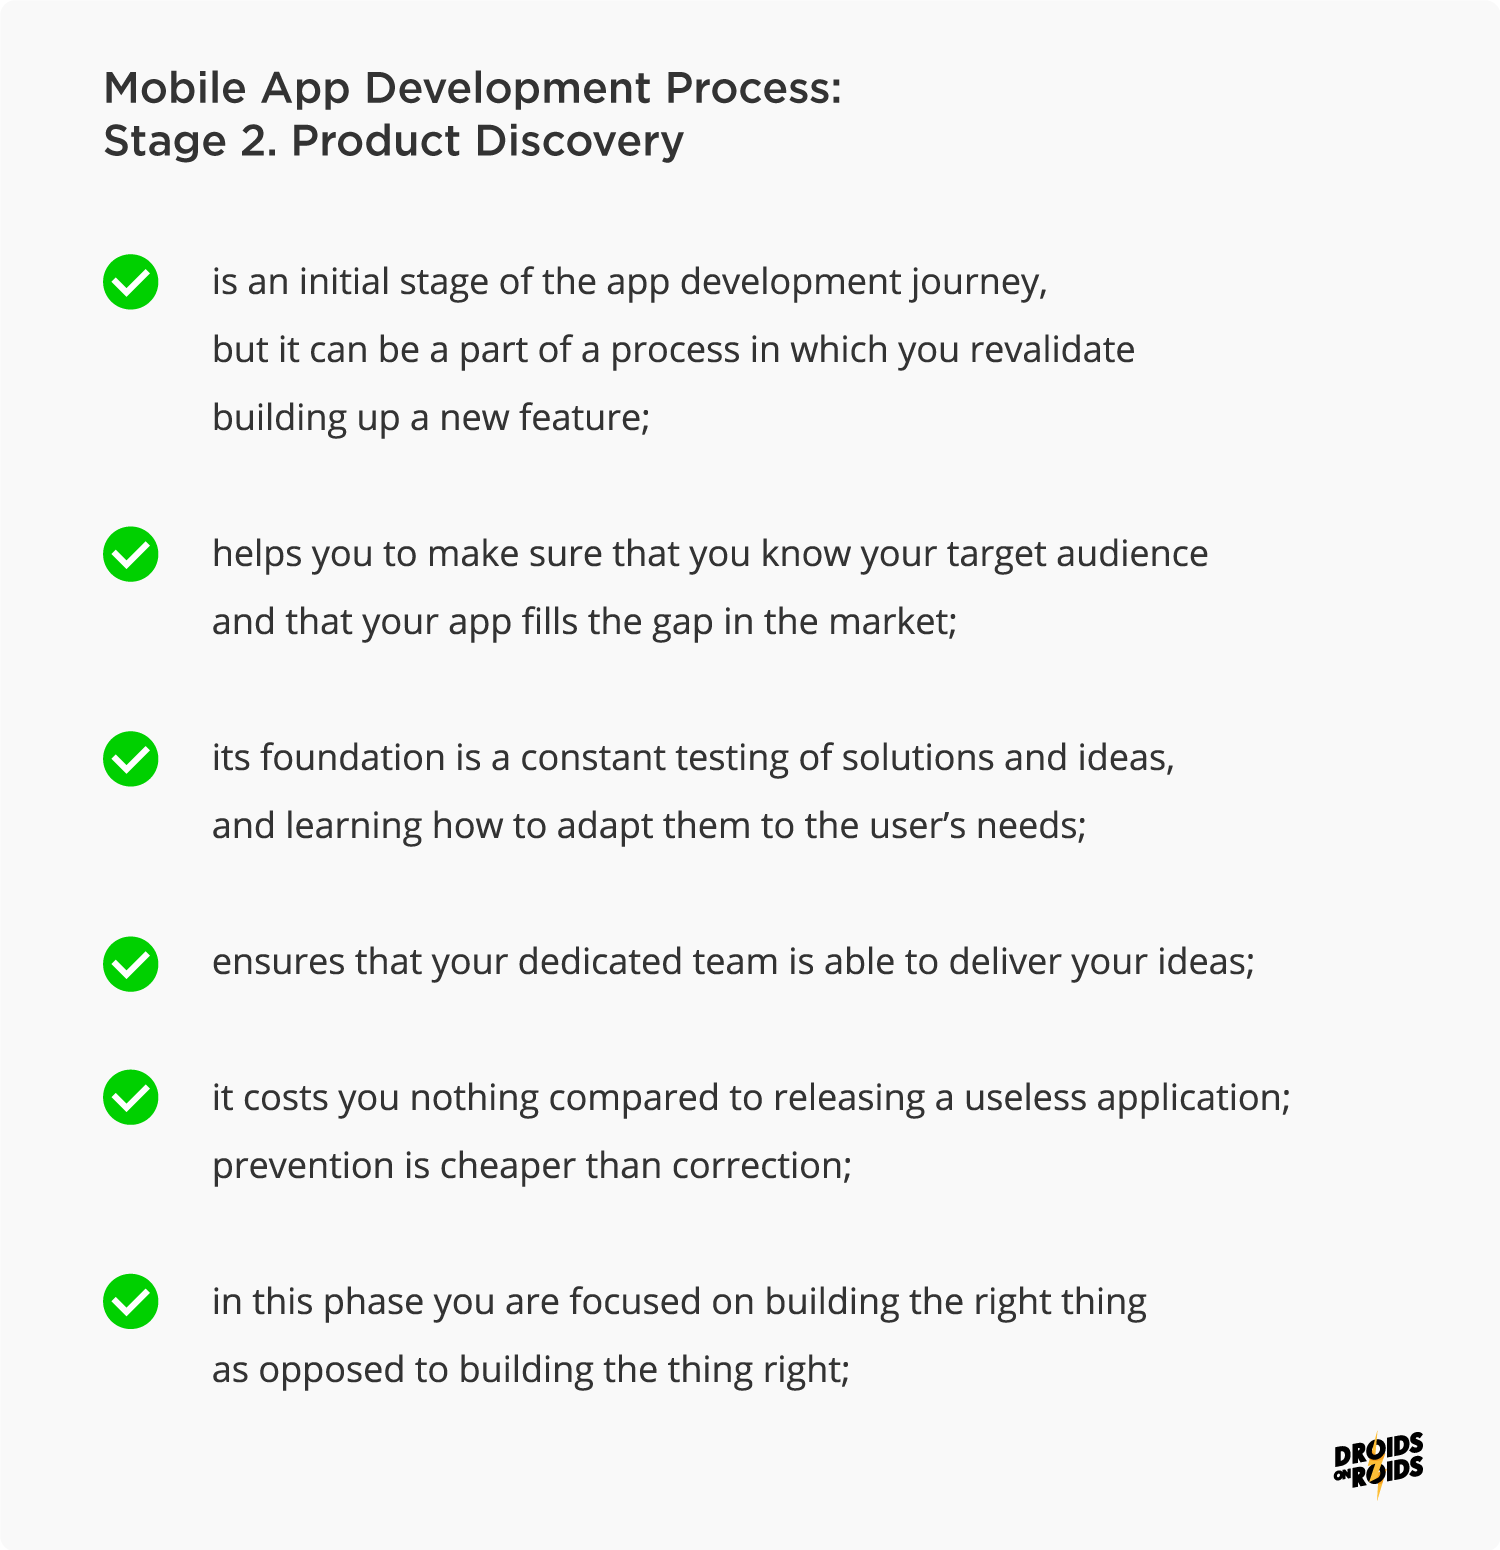 Mobile App Development Process – Product Discovery Phase